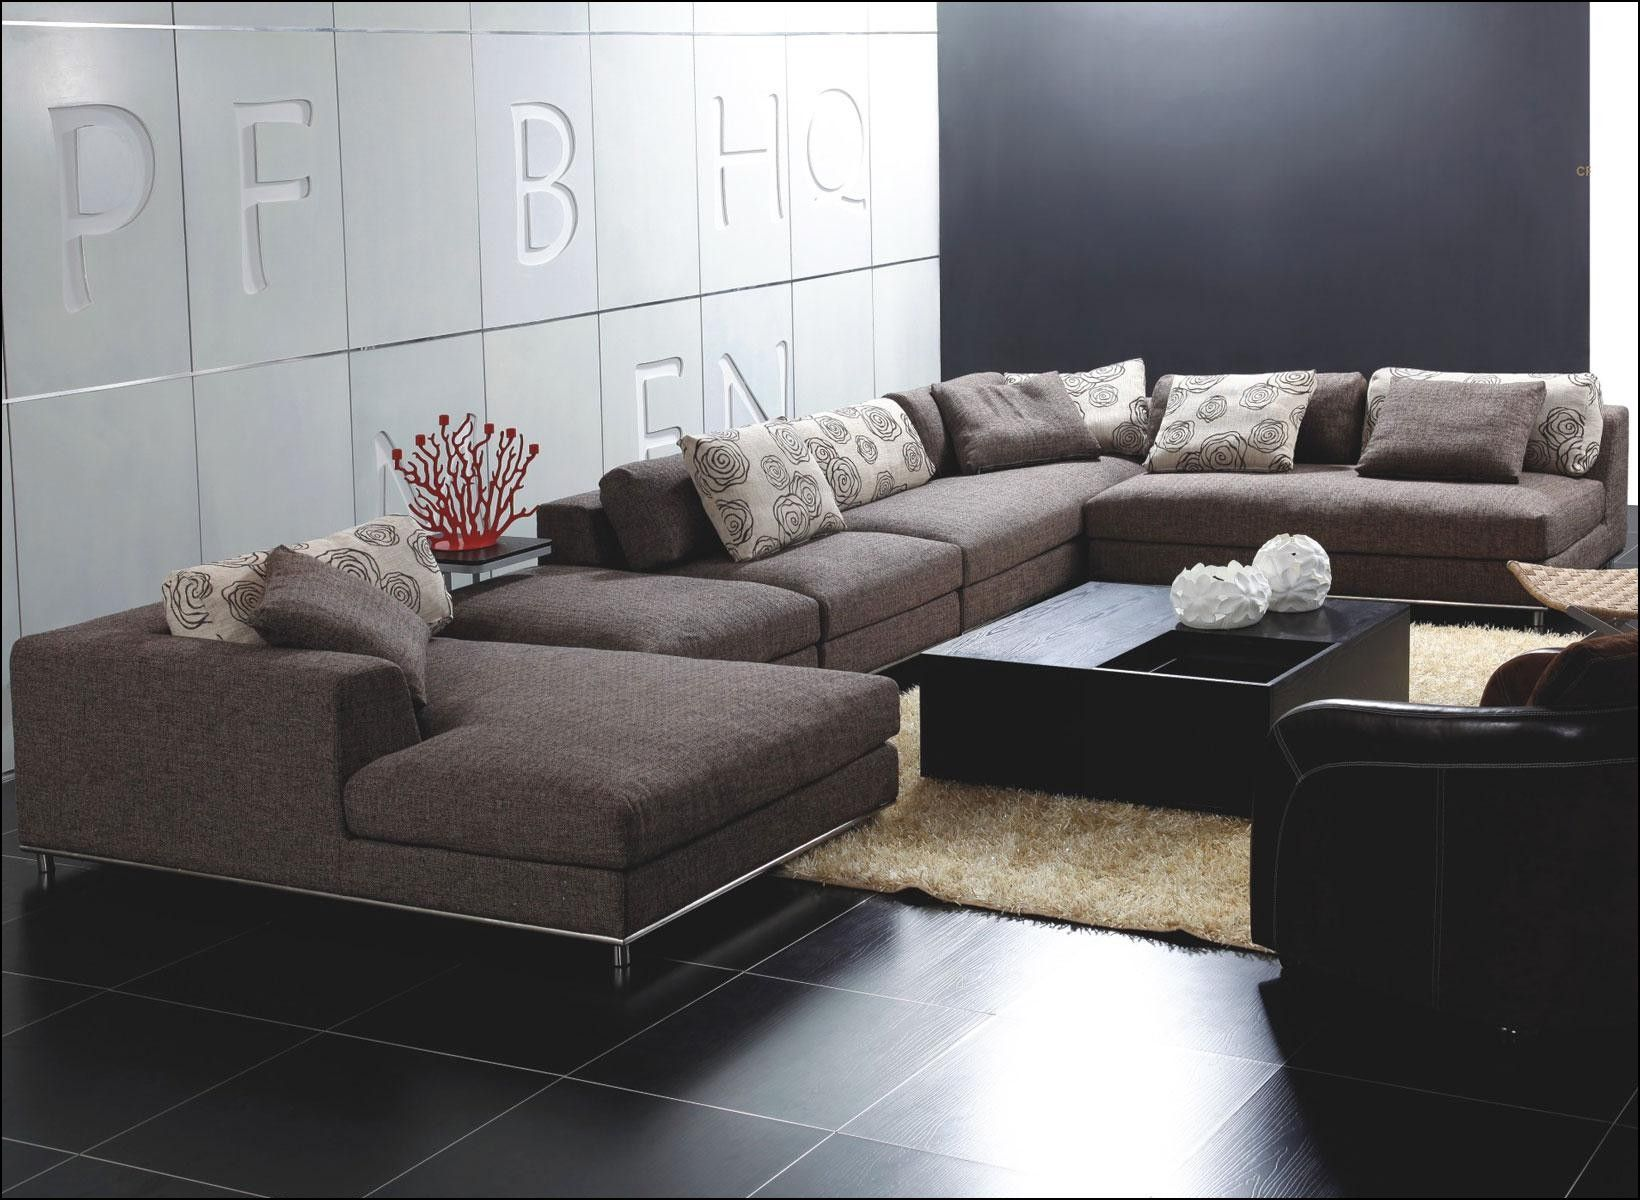 Best Sectional Sofas 2016 In Case Your Room Is Too Small Even For A Tiny Or You Want To Leave Some E The